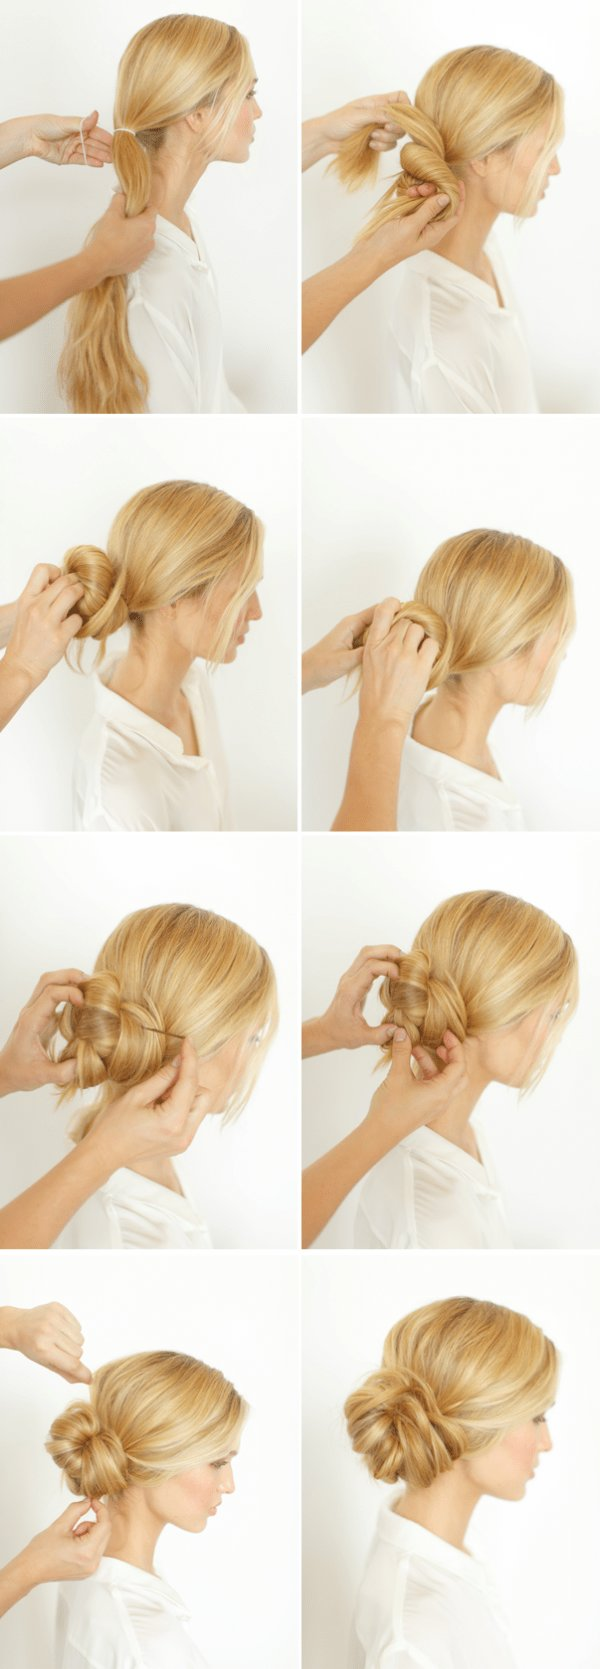 The Best 12 Easy Diy Hairstyle Tutorials For Every Occasion Pictures